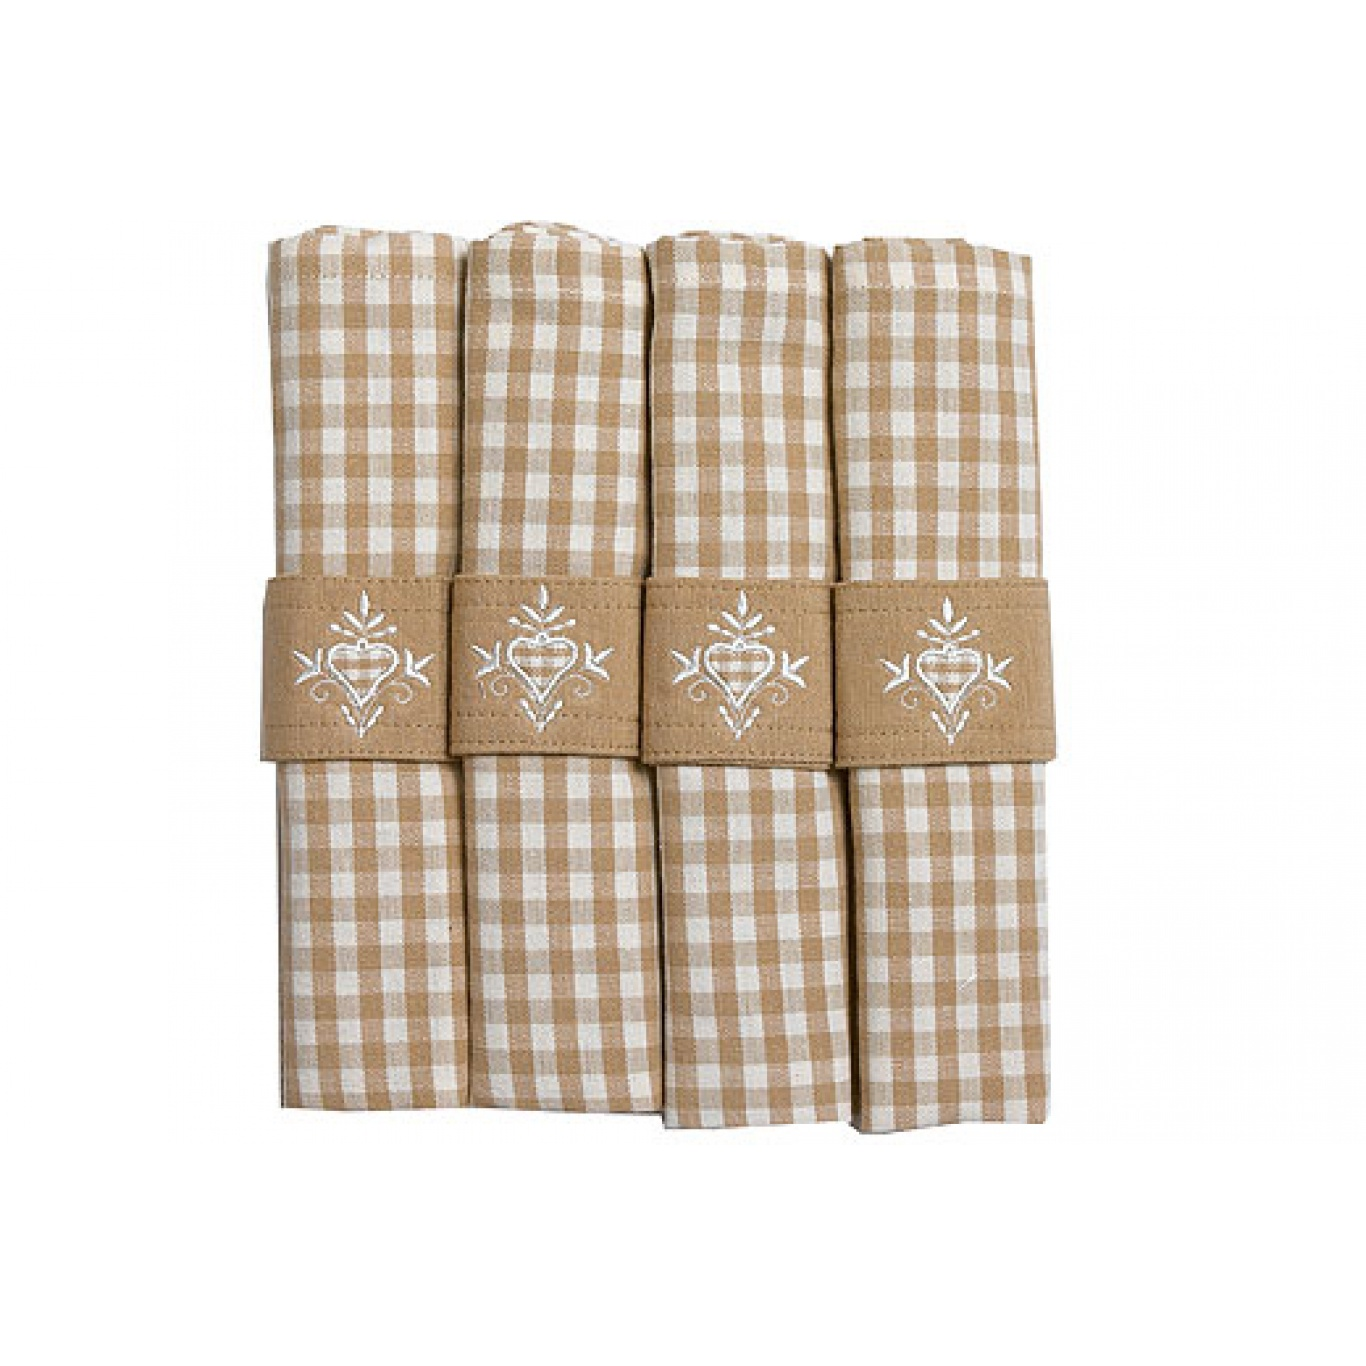 Auberge Biscuit Check Napkins set of 4